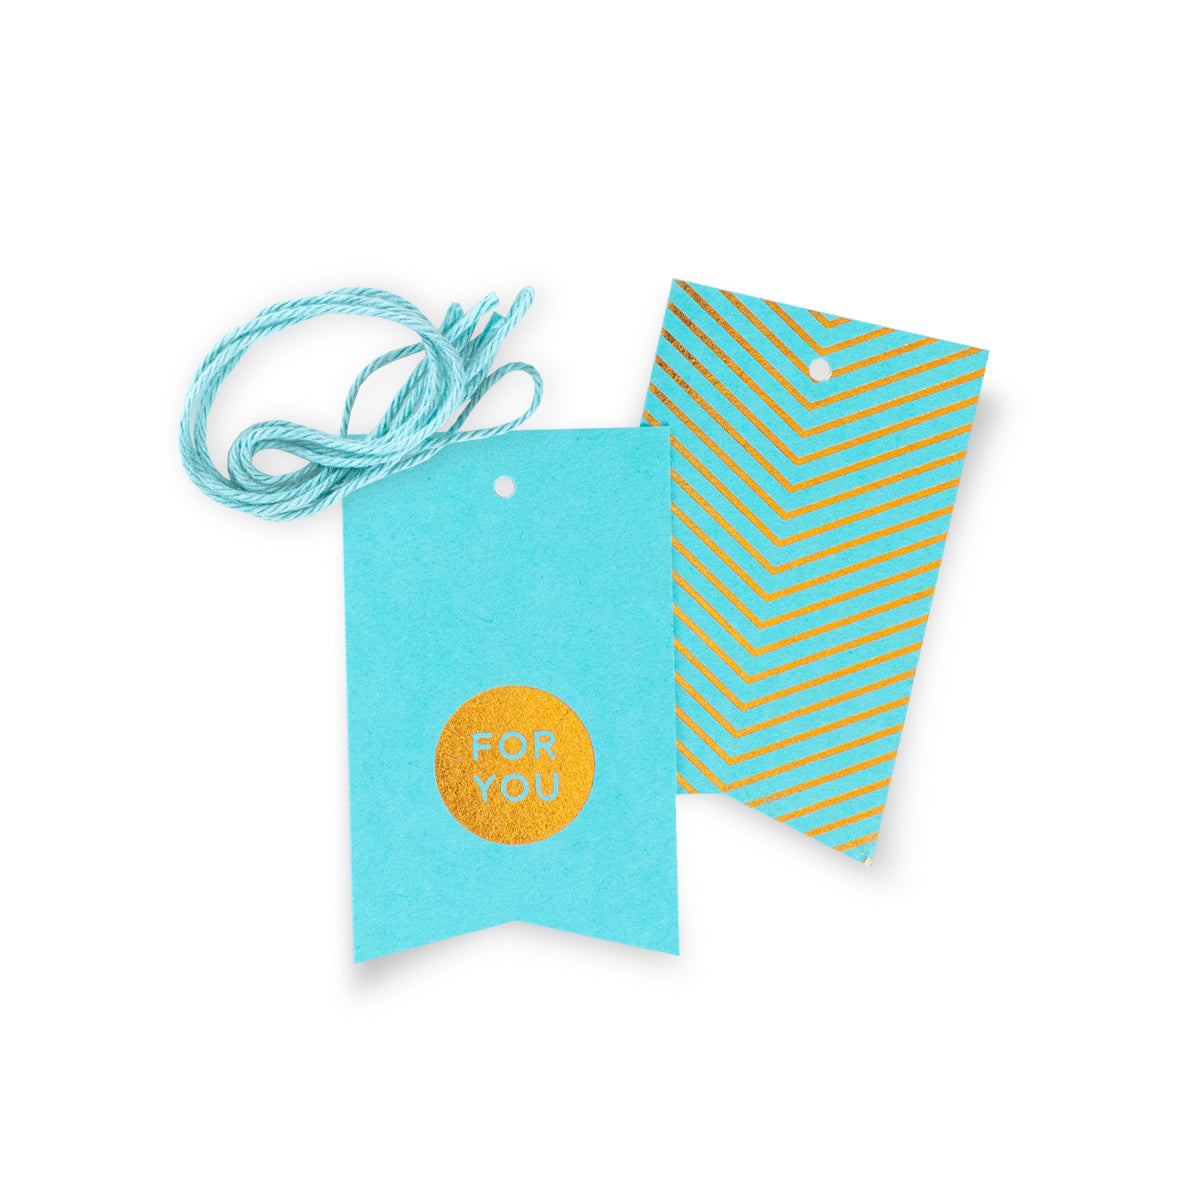 For You Gift Tags – Blue